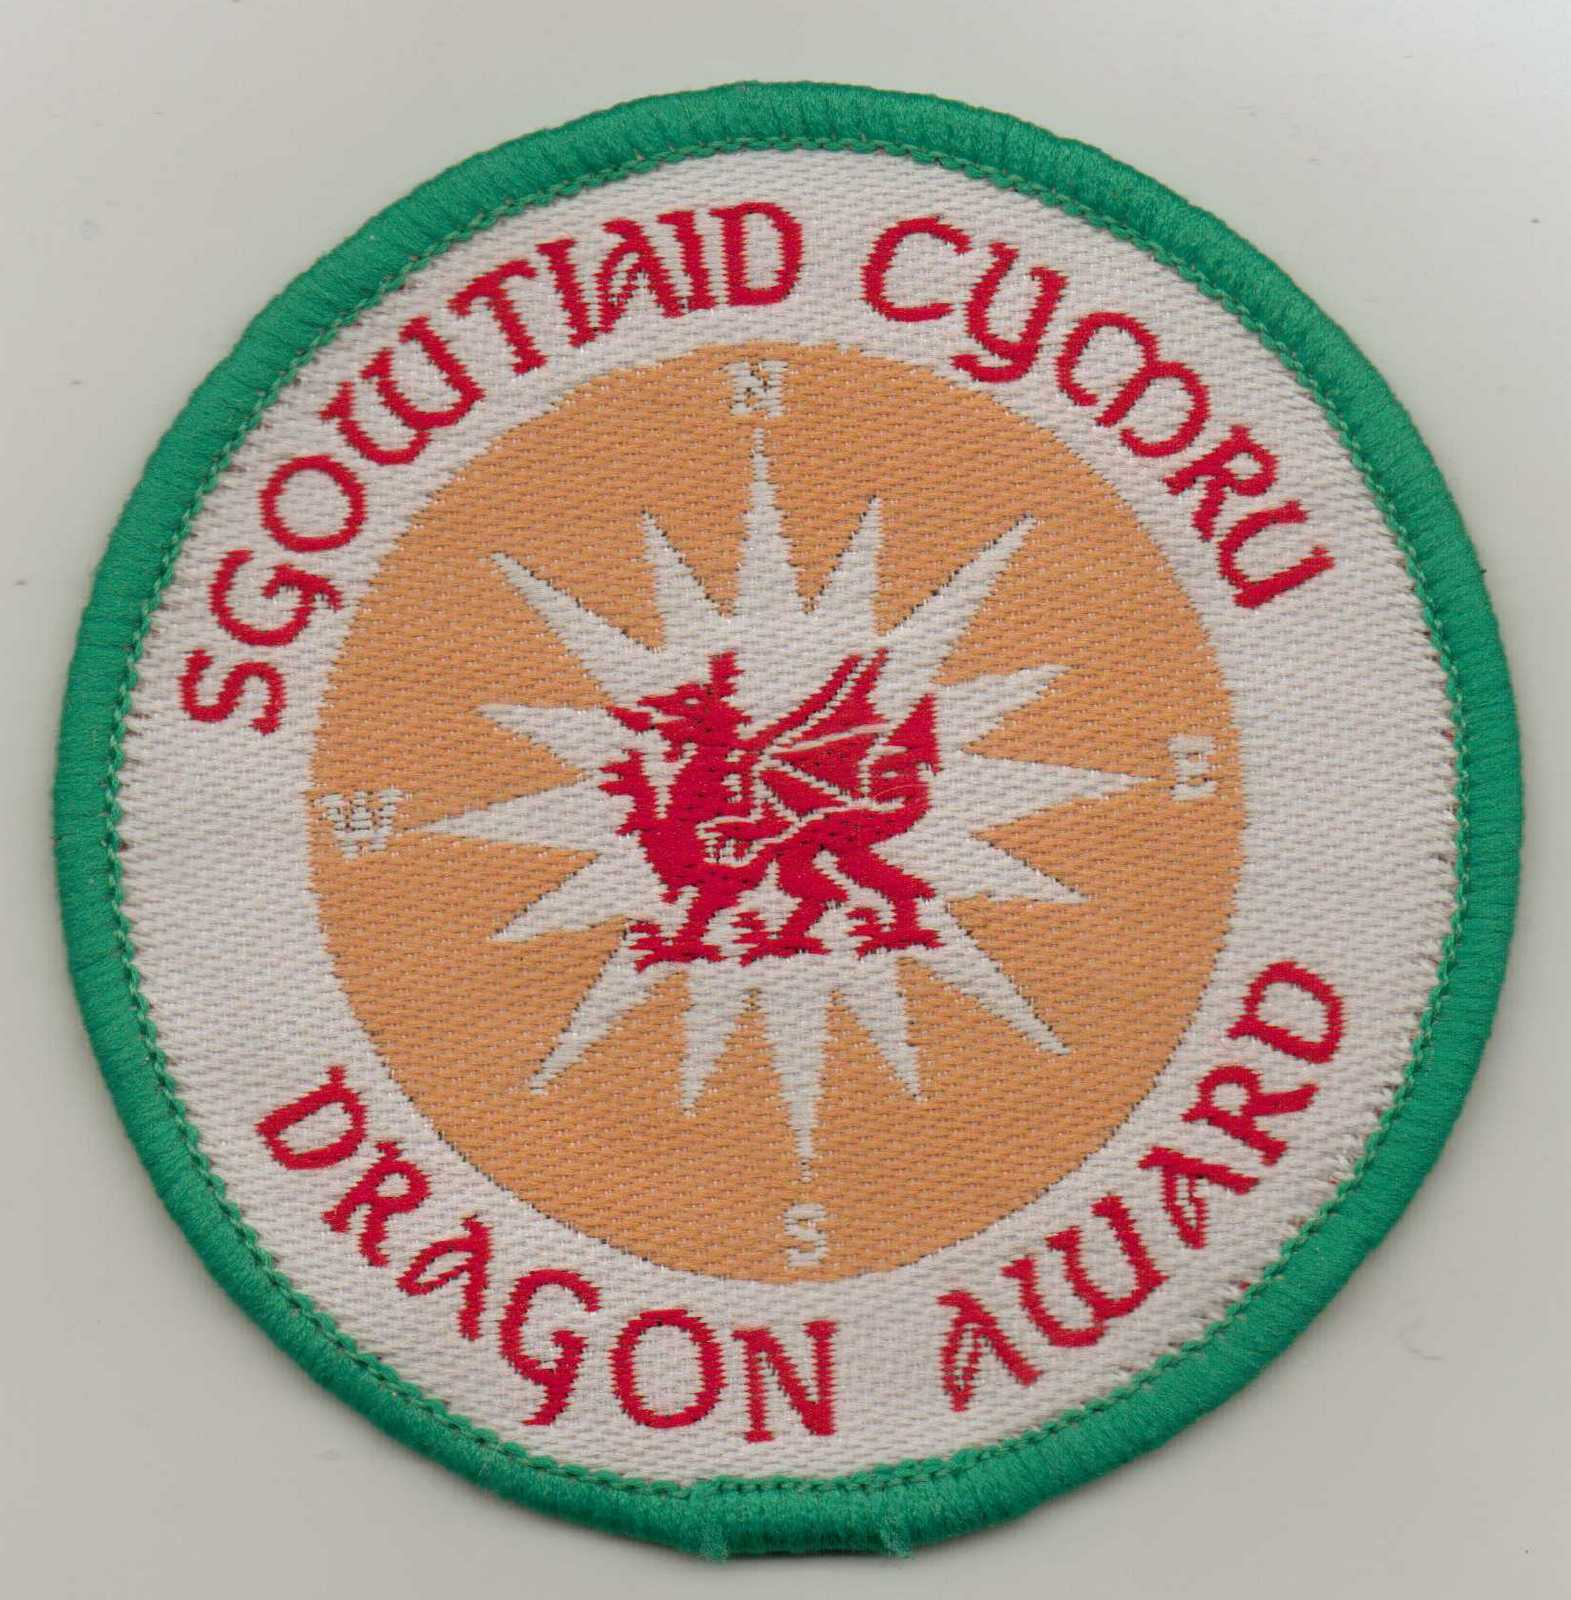 Dragon Award Bronze